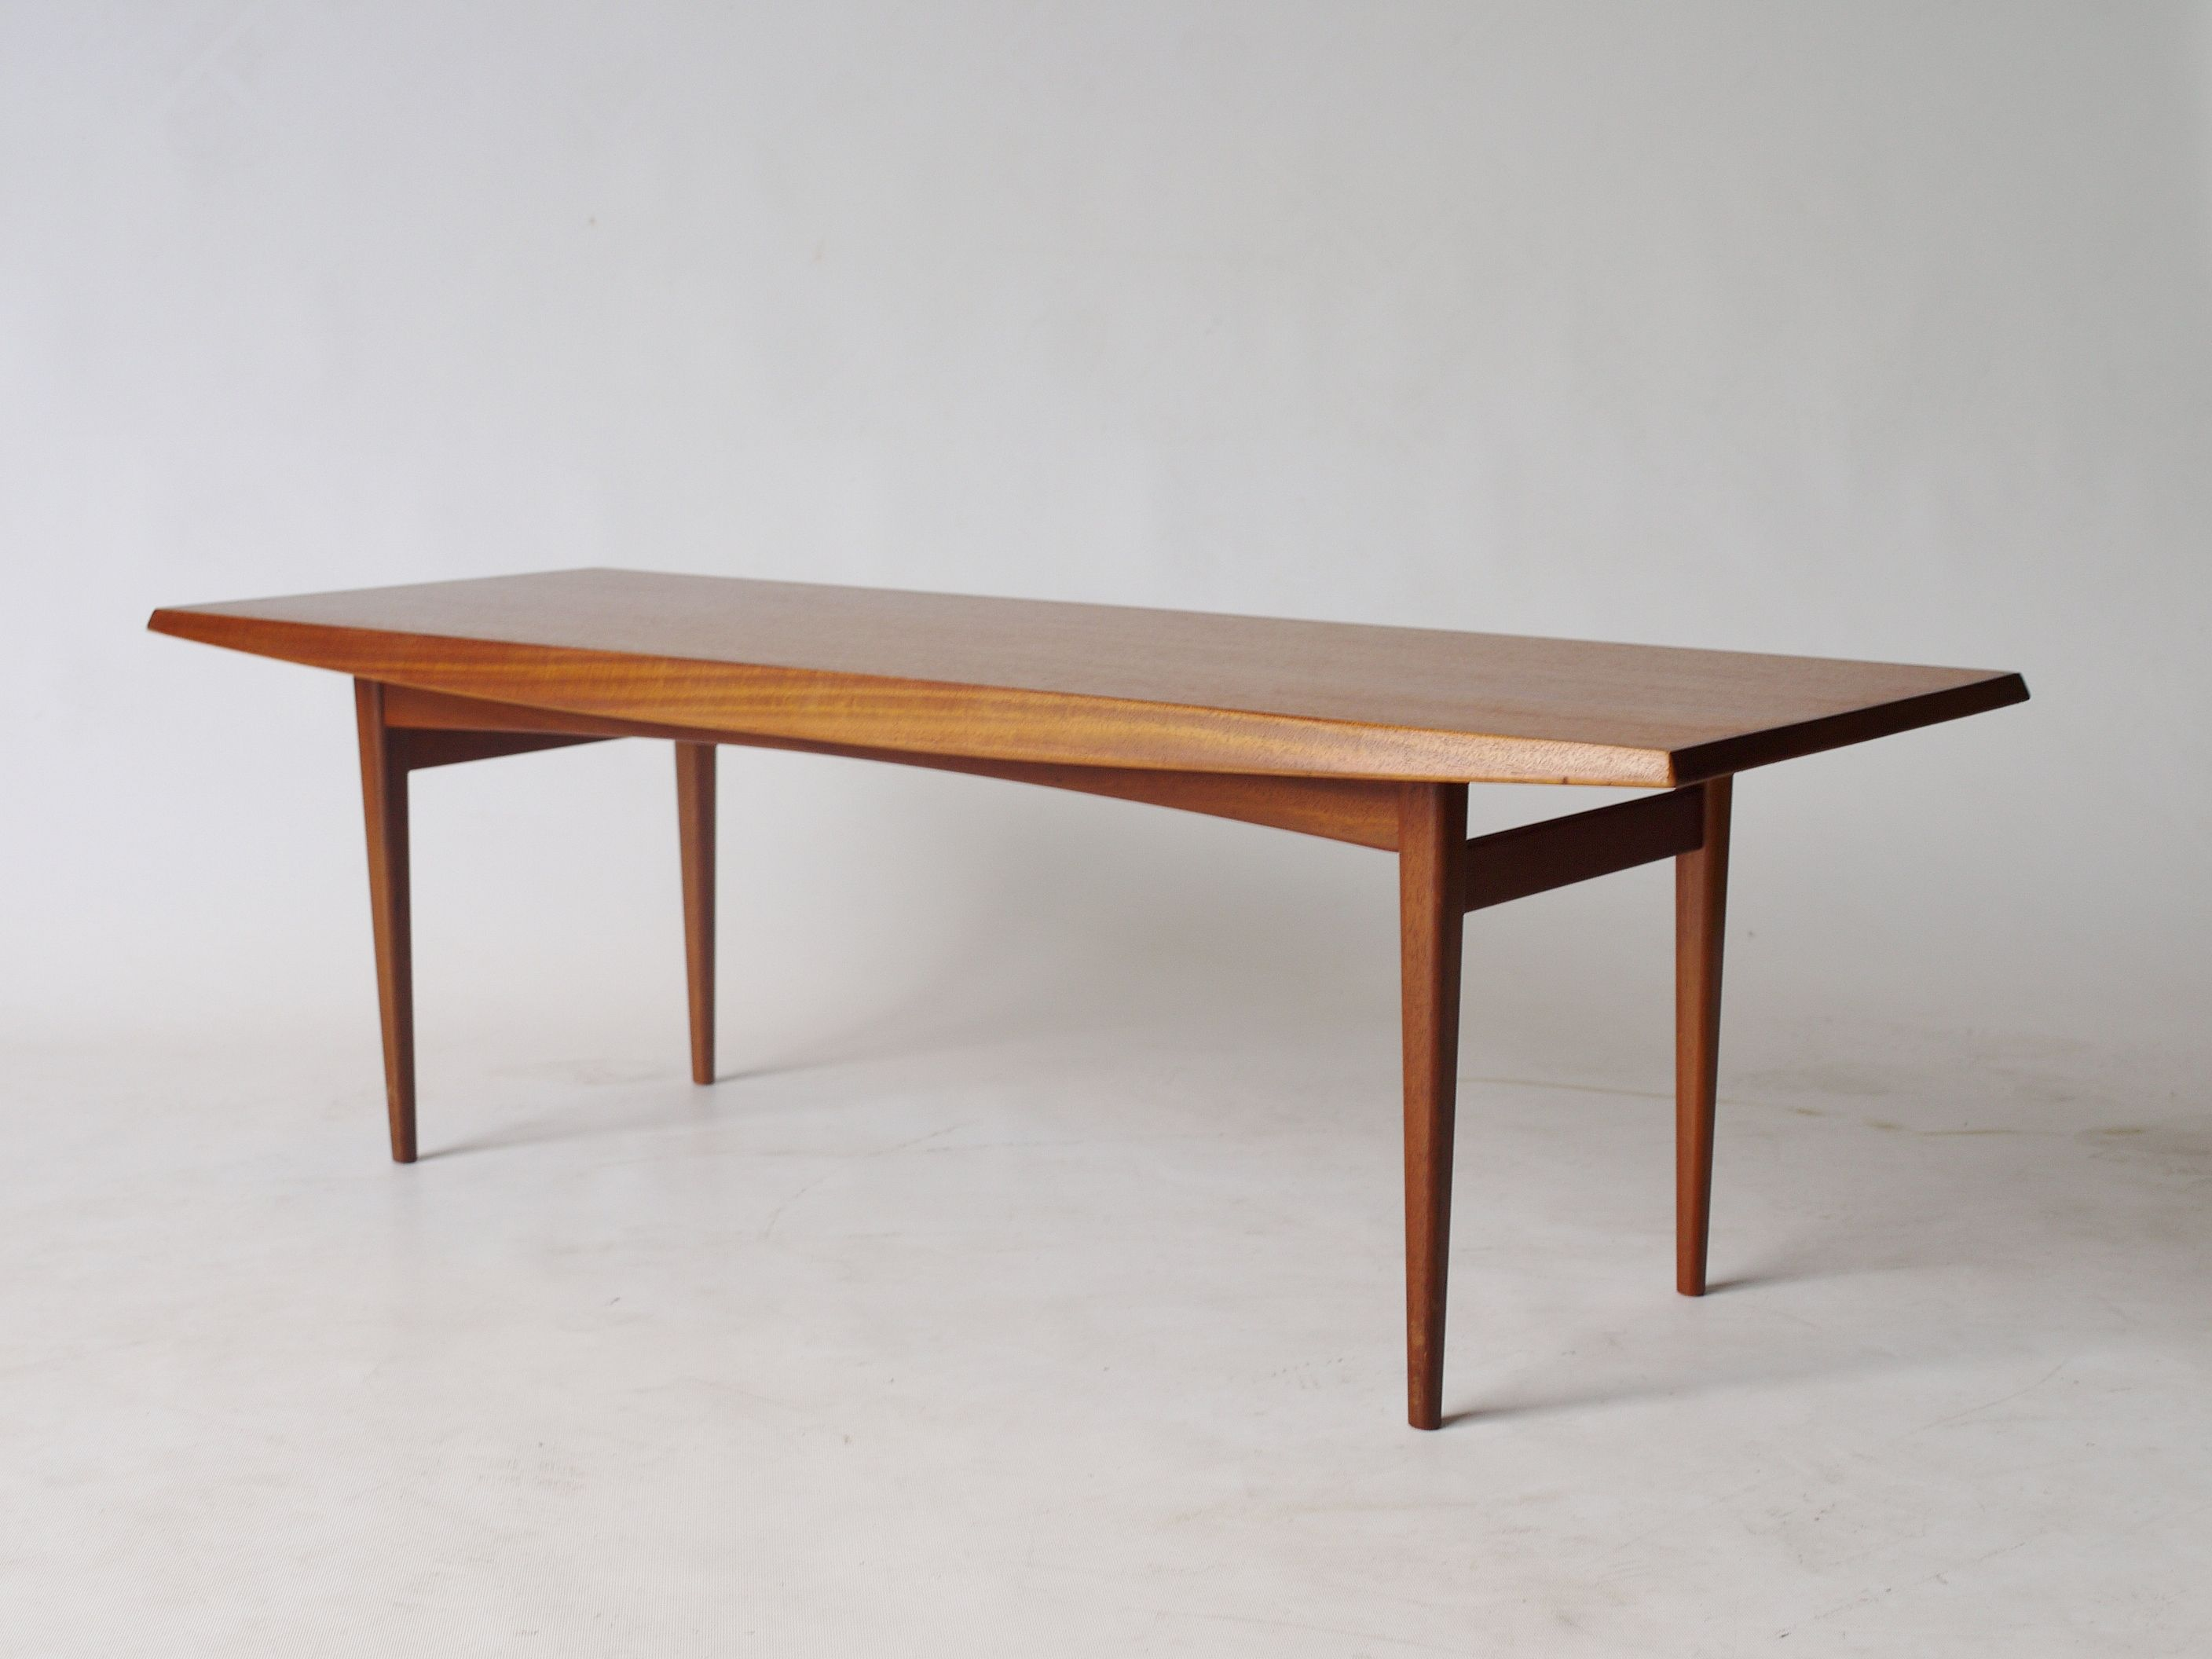 Gordon russell teak 60s coffee table sold by merzbau merzbau gordon russell teak 60s coffee table sold by merzbau geotapseo Image collections